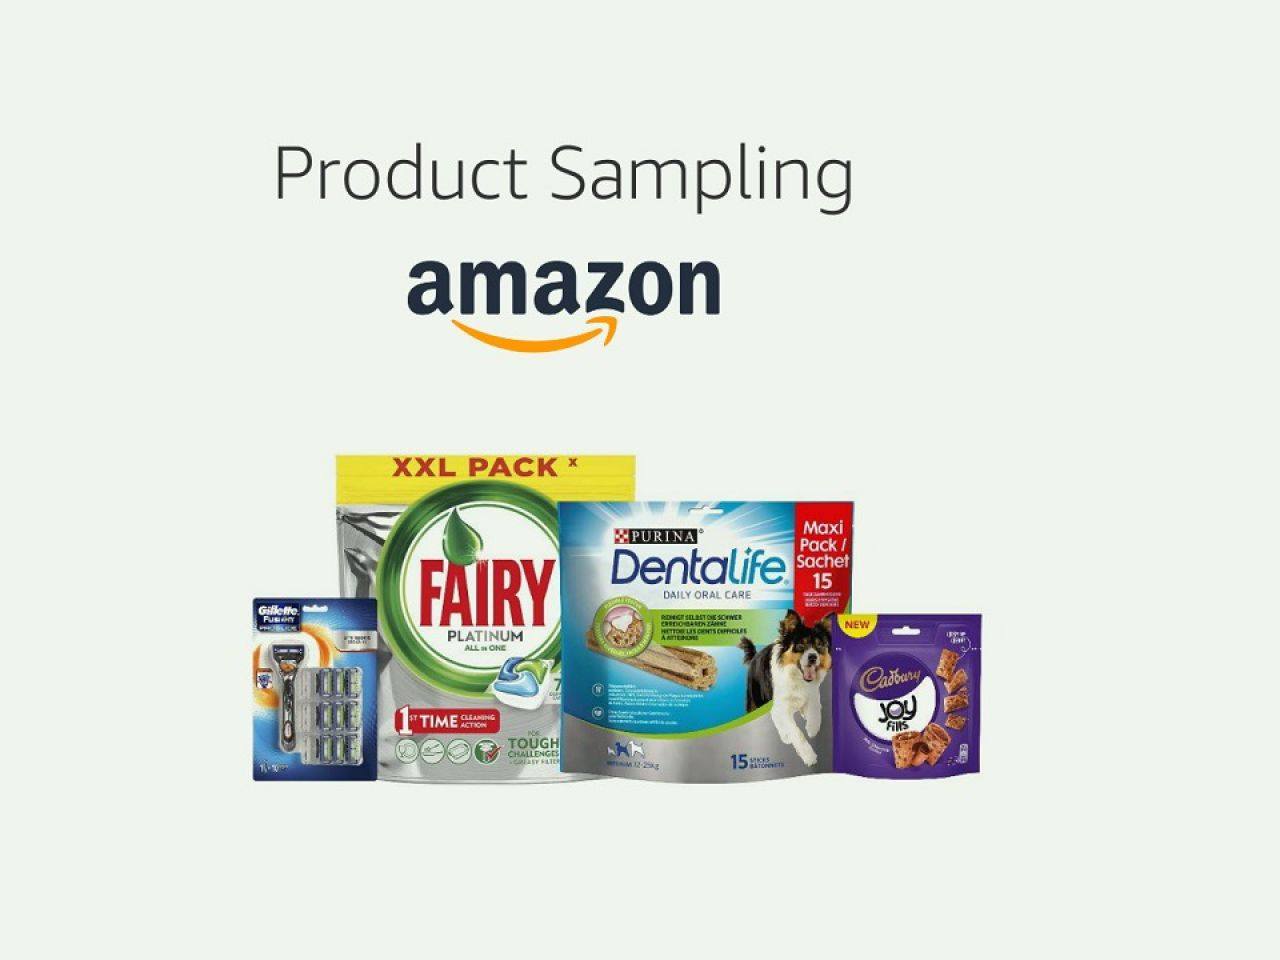 amazon product sampling in Italia